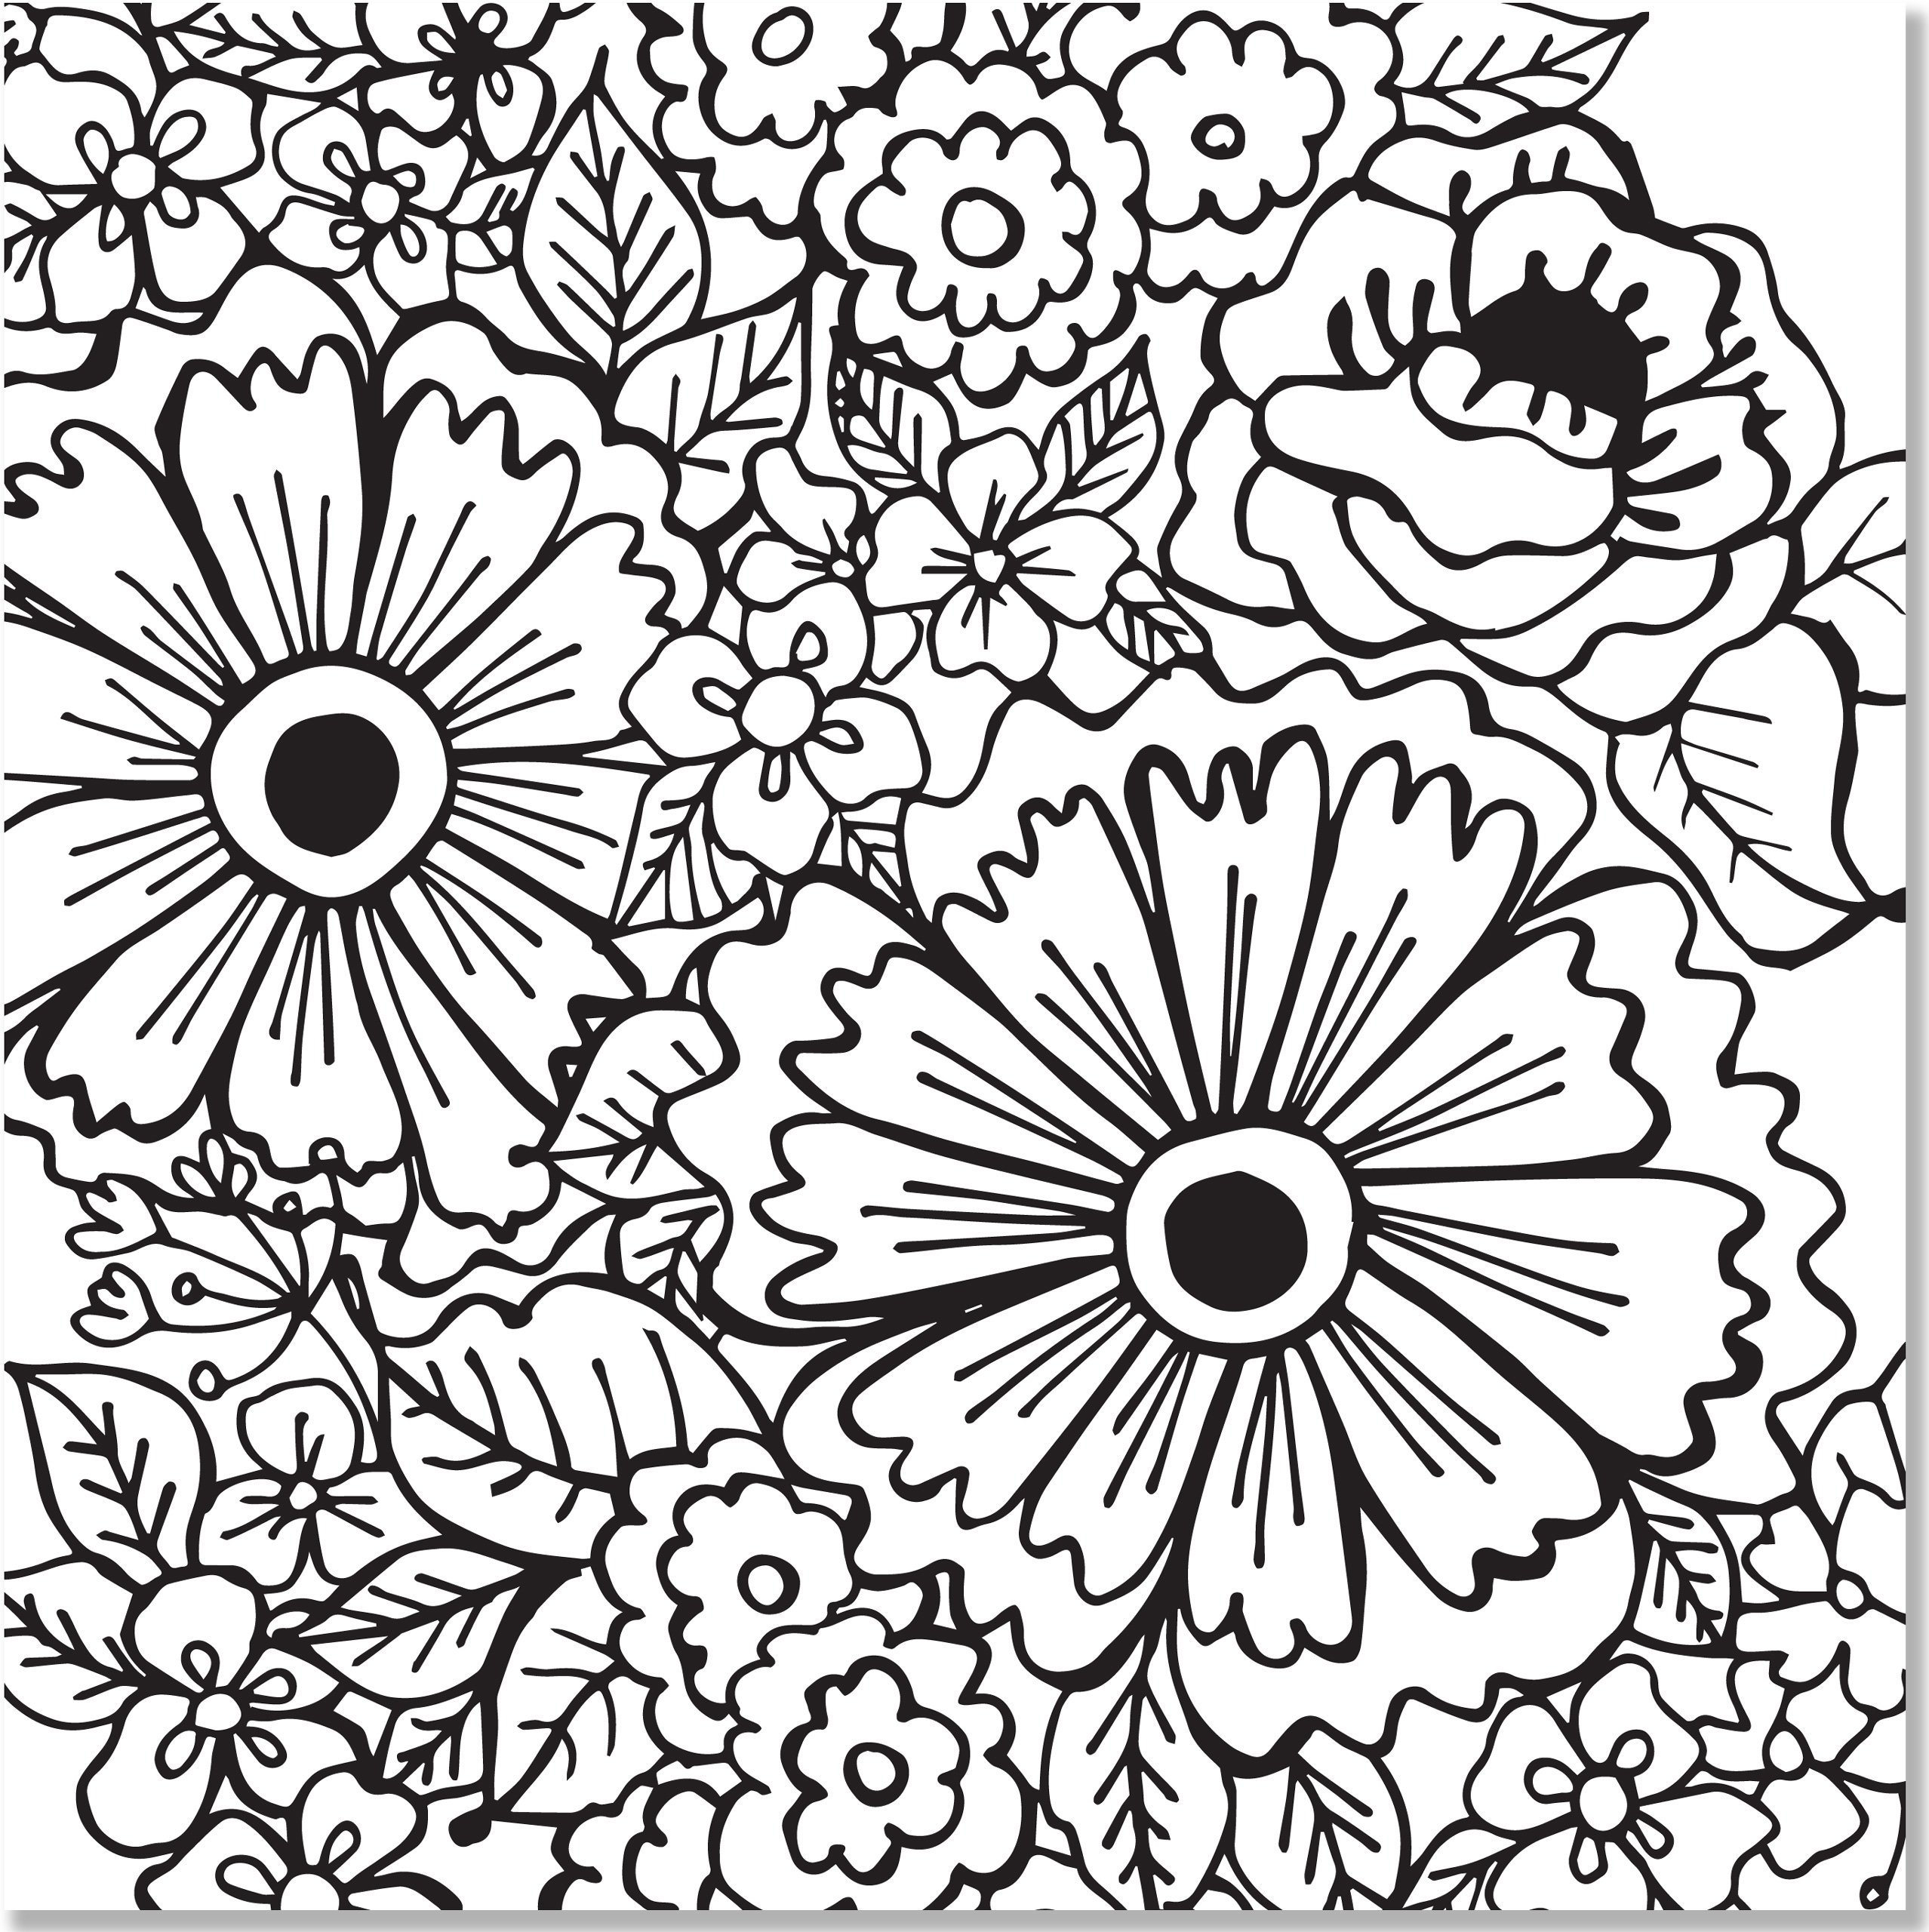 Amazon.com: Joyful Designs Adult Coloring Book (31 stress ...